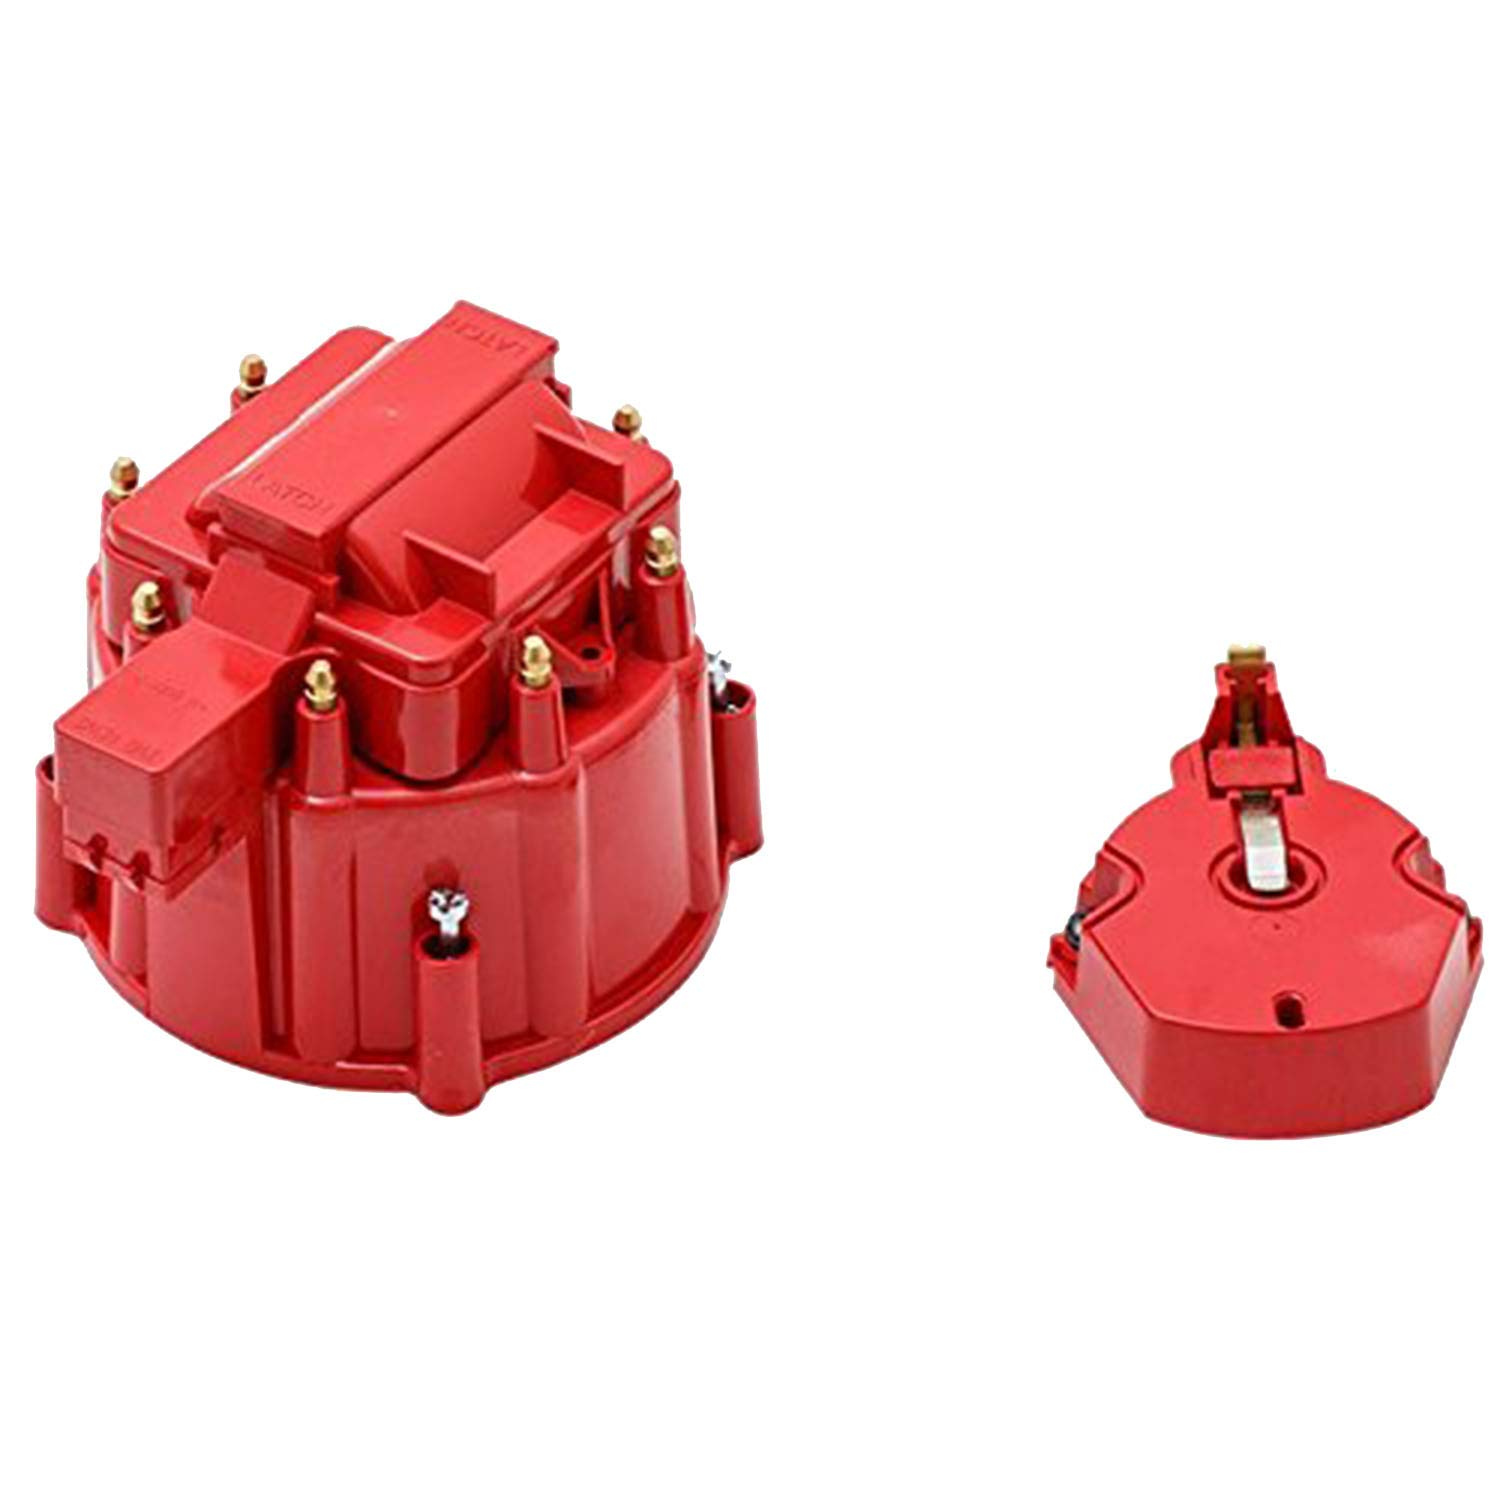 A-Team Performance CR8OR HEI OEM Distributor Cap with Rotor and Coil Cover Kit Compatible with Small Block SBC Big Block BBC Chevy Chevrolet 65K Coil 7500 RPM Orange